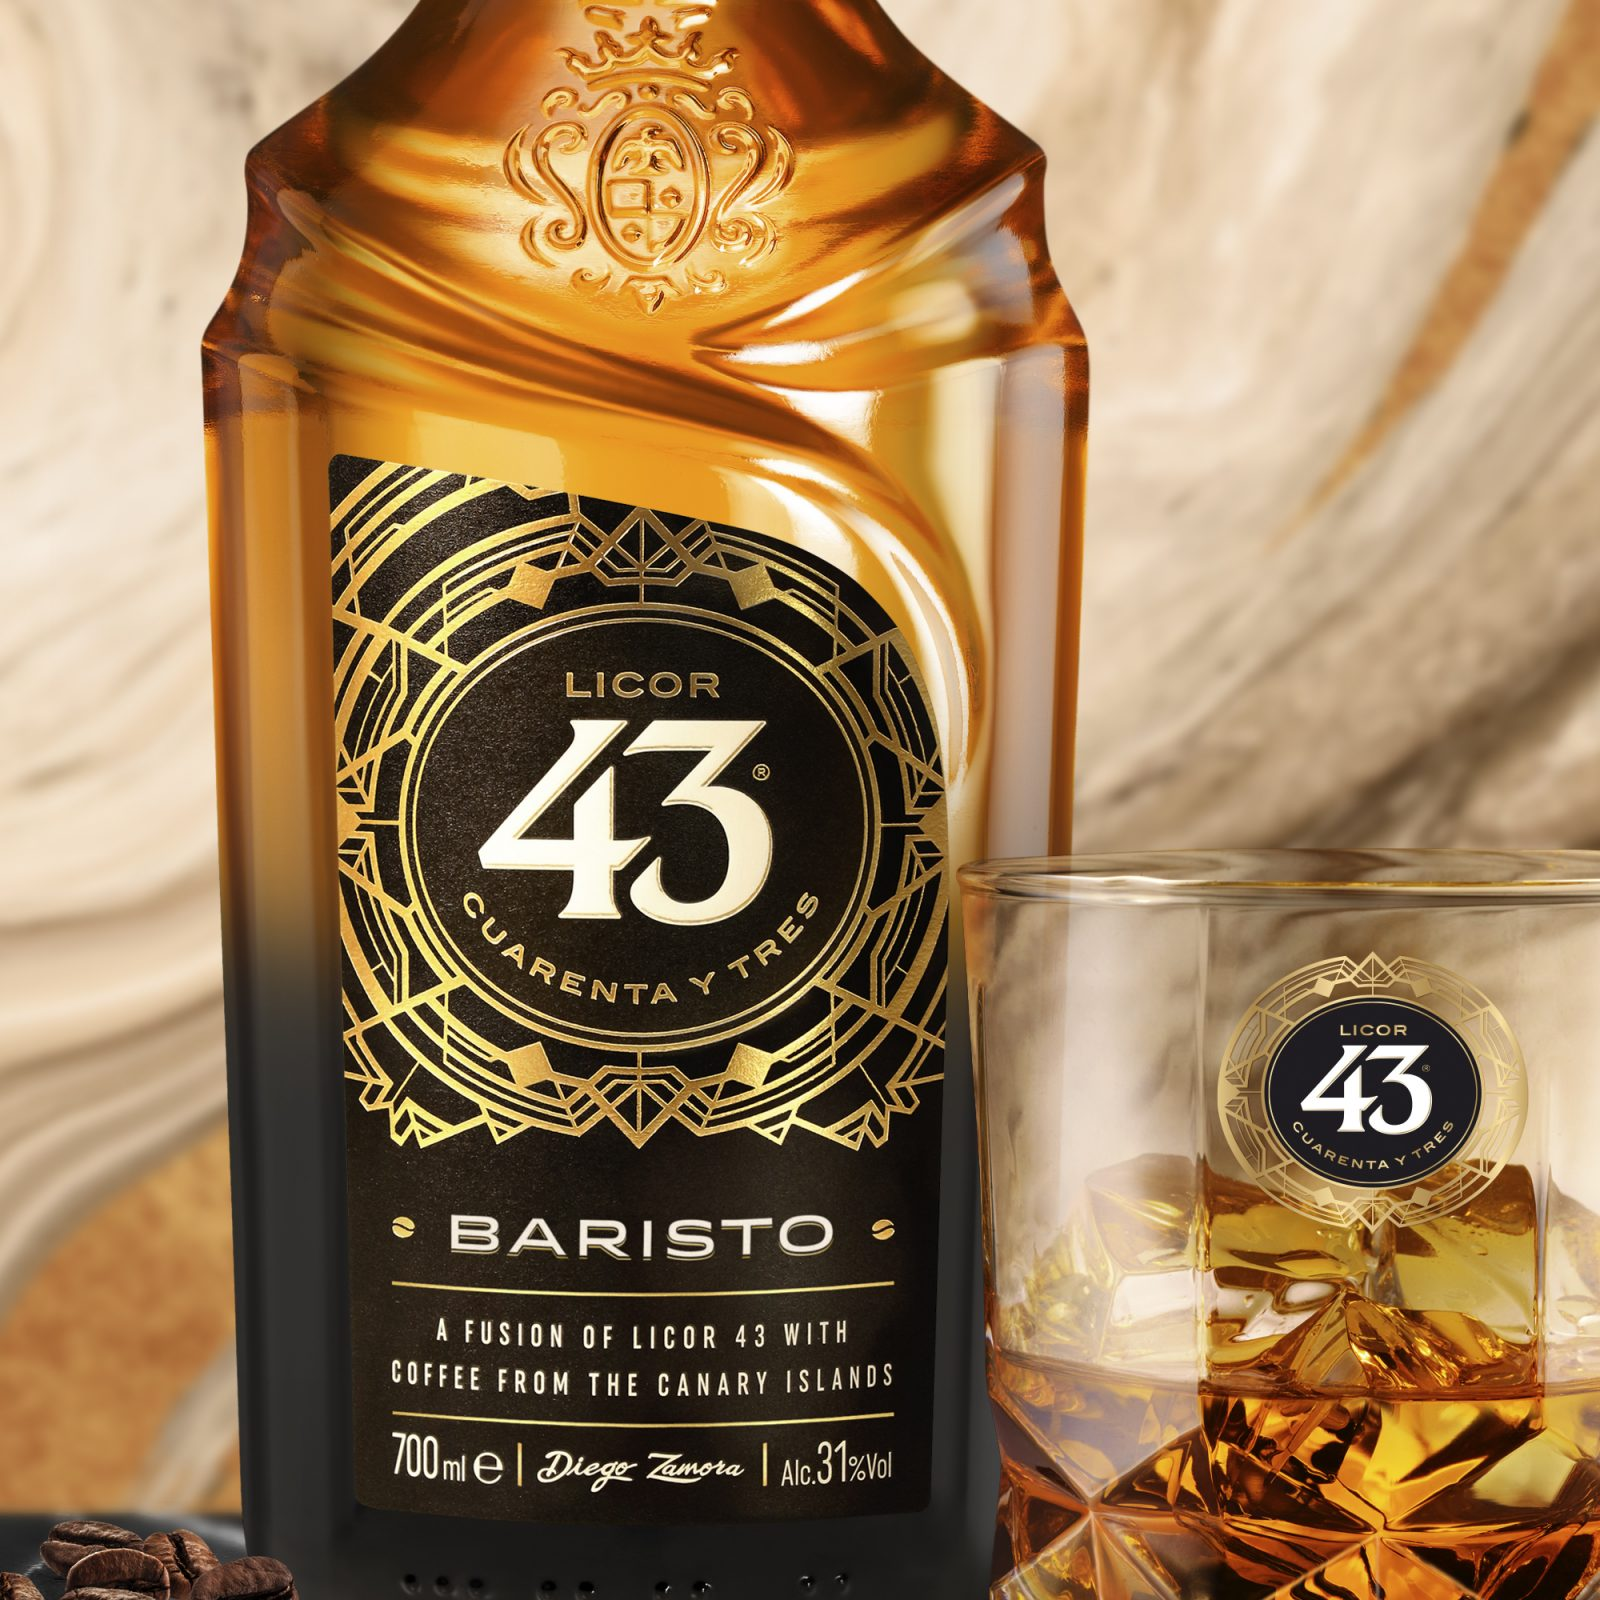 INTRODUCING LICOR 43 BARISTO